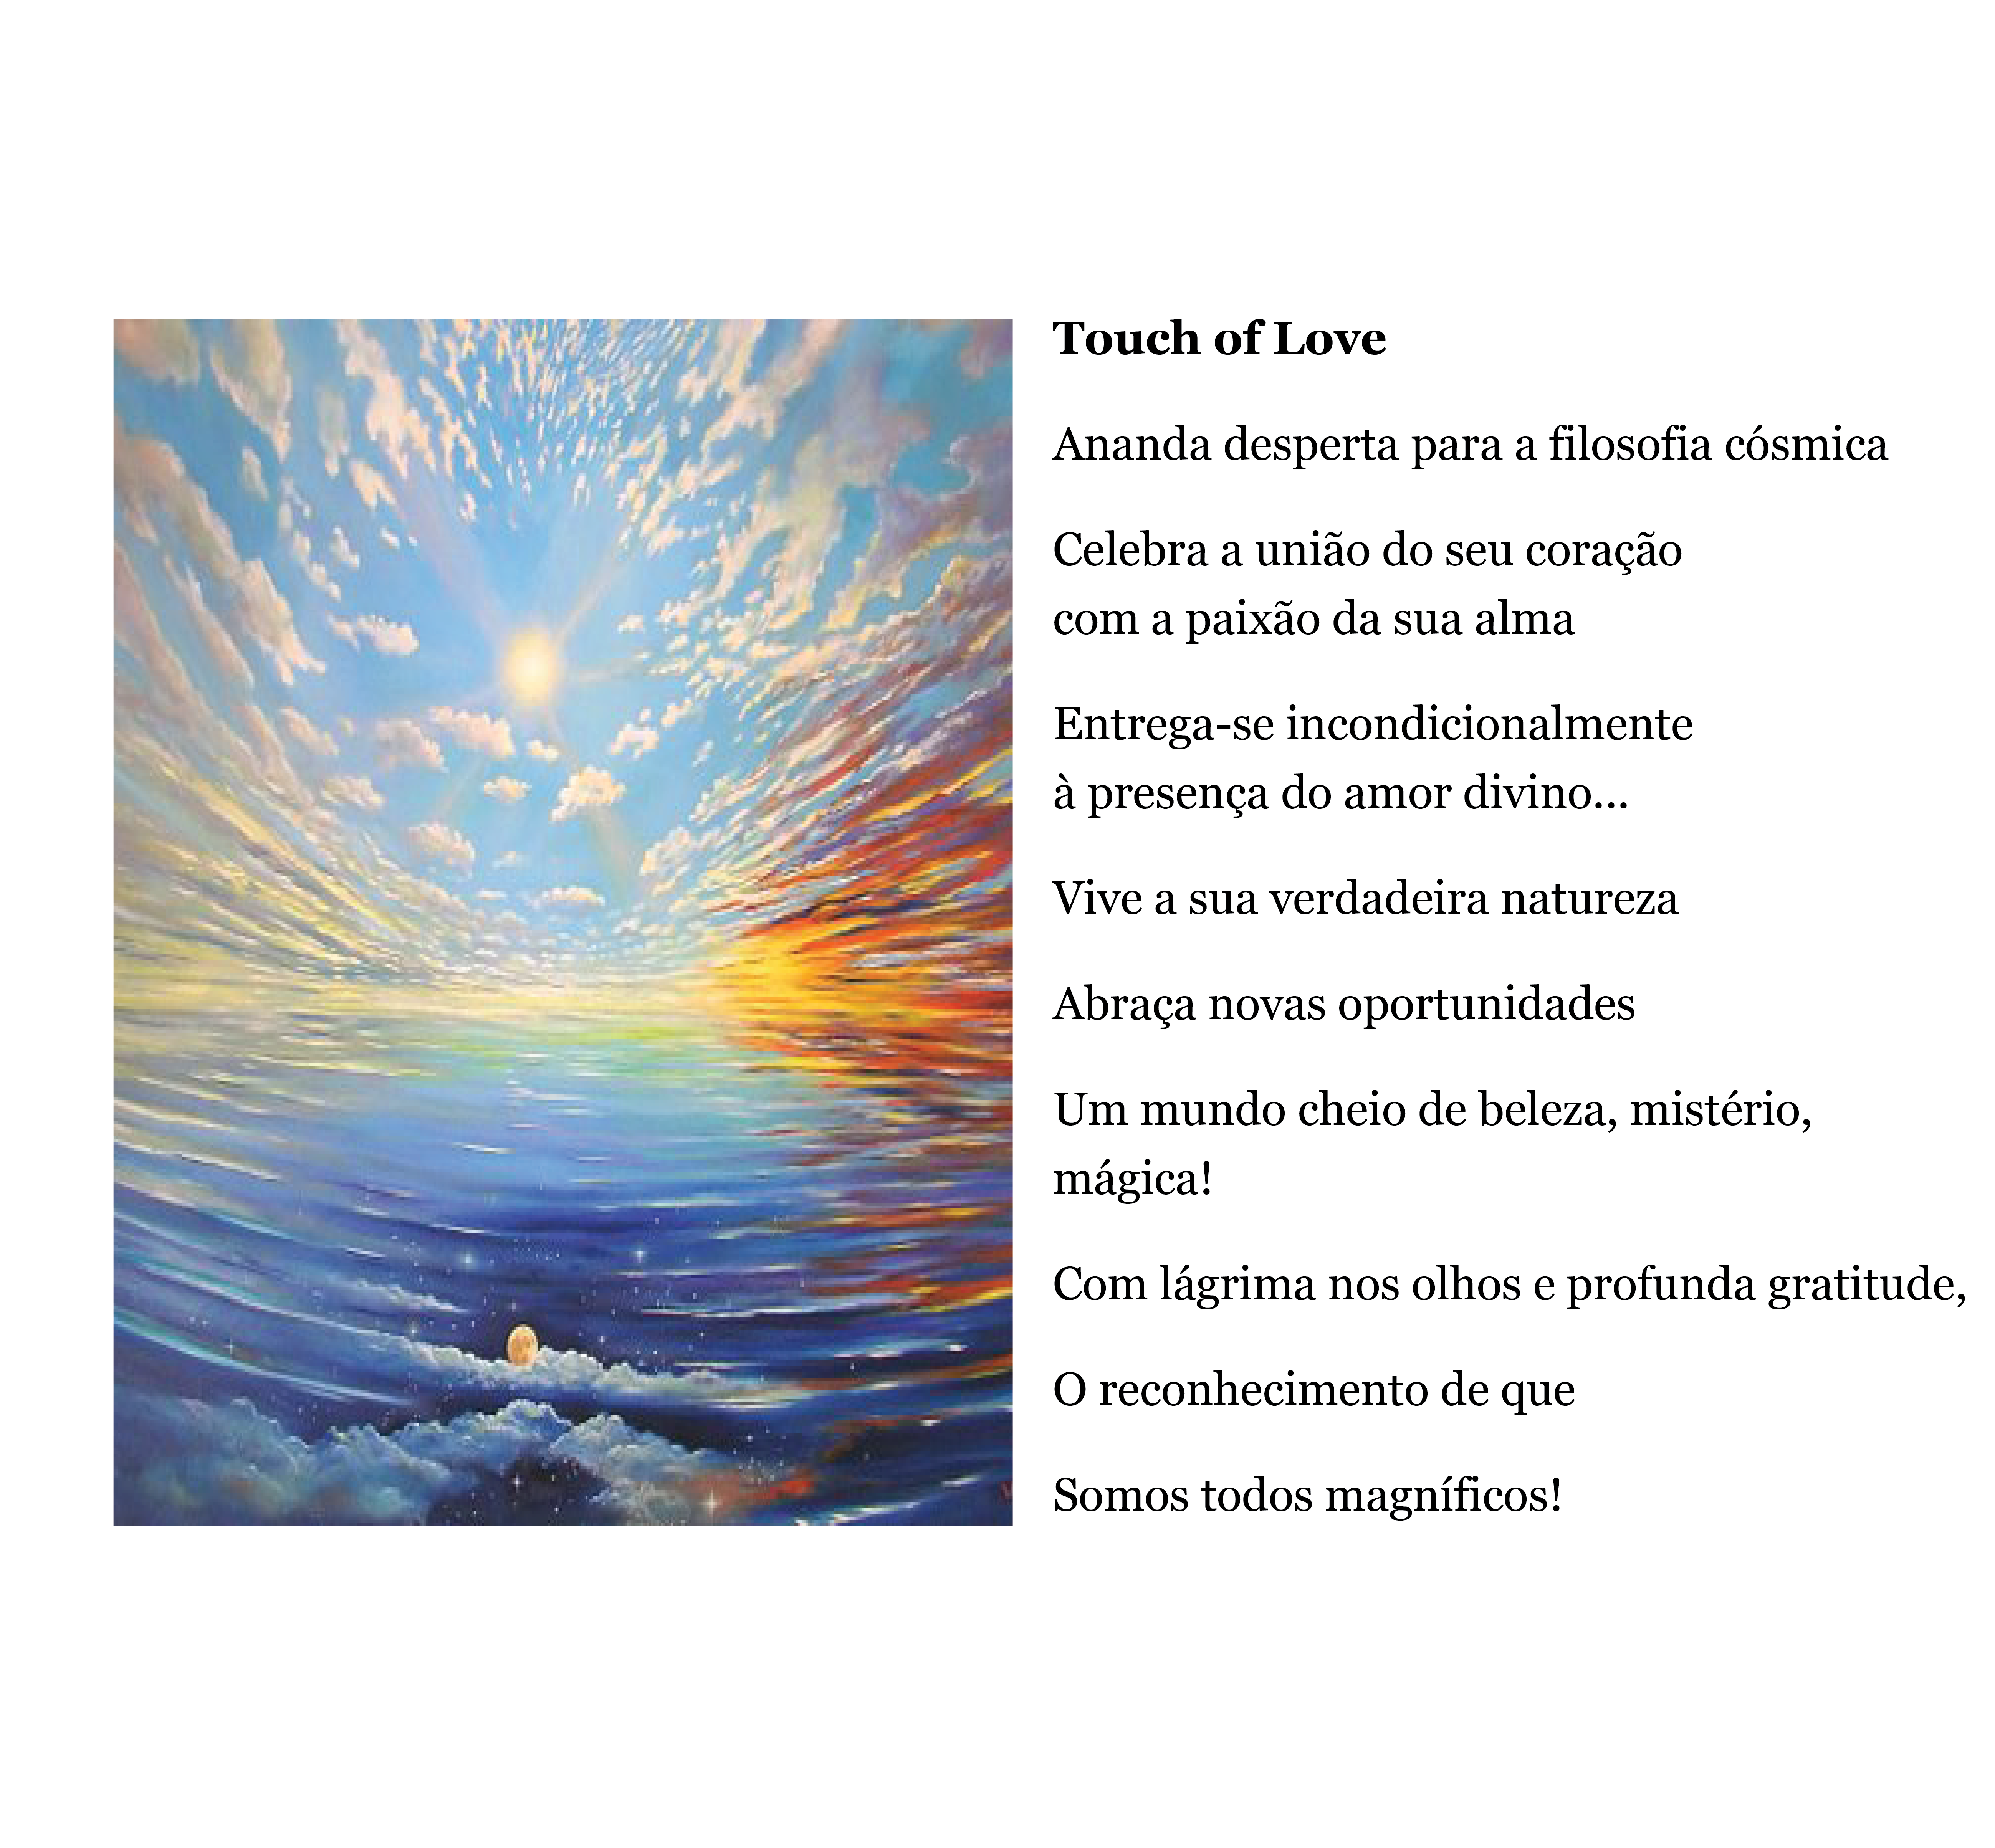 Touch_of_Love-01-01